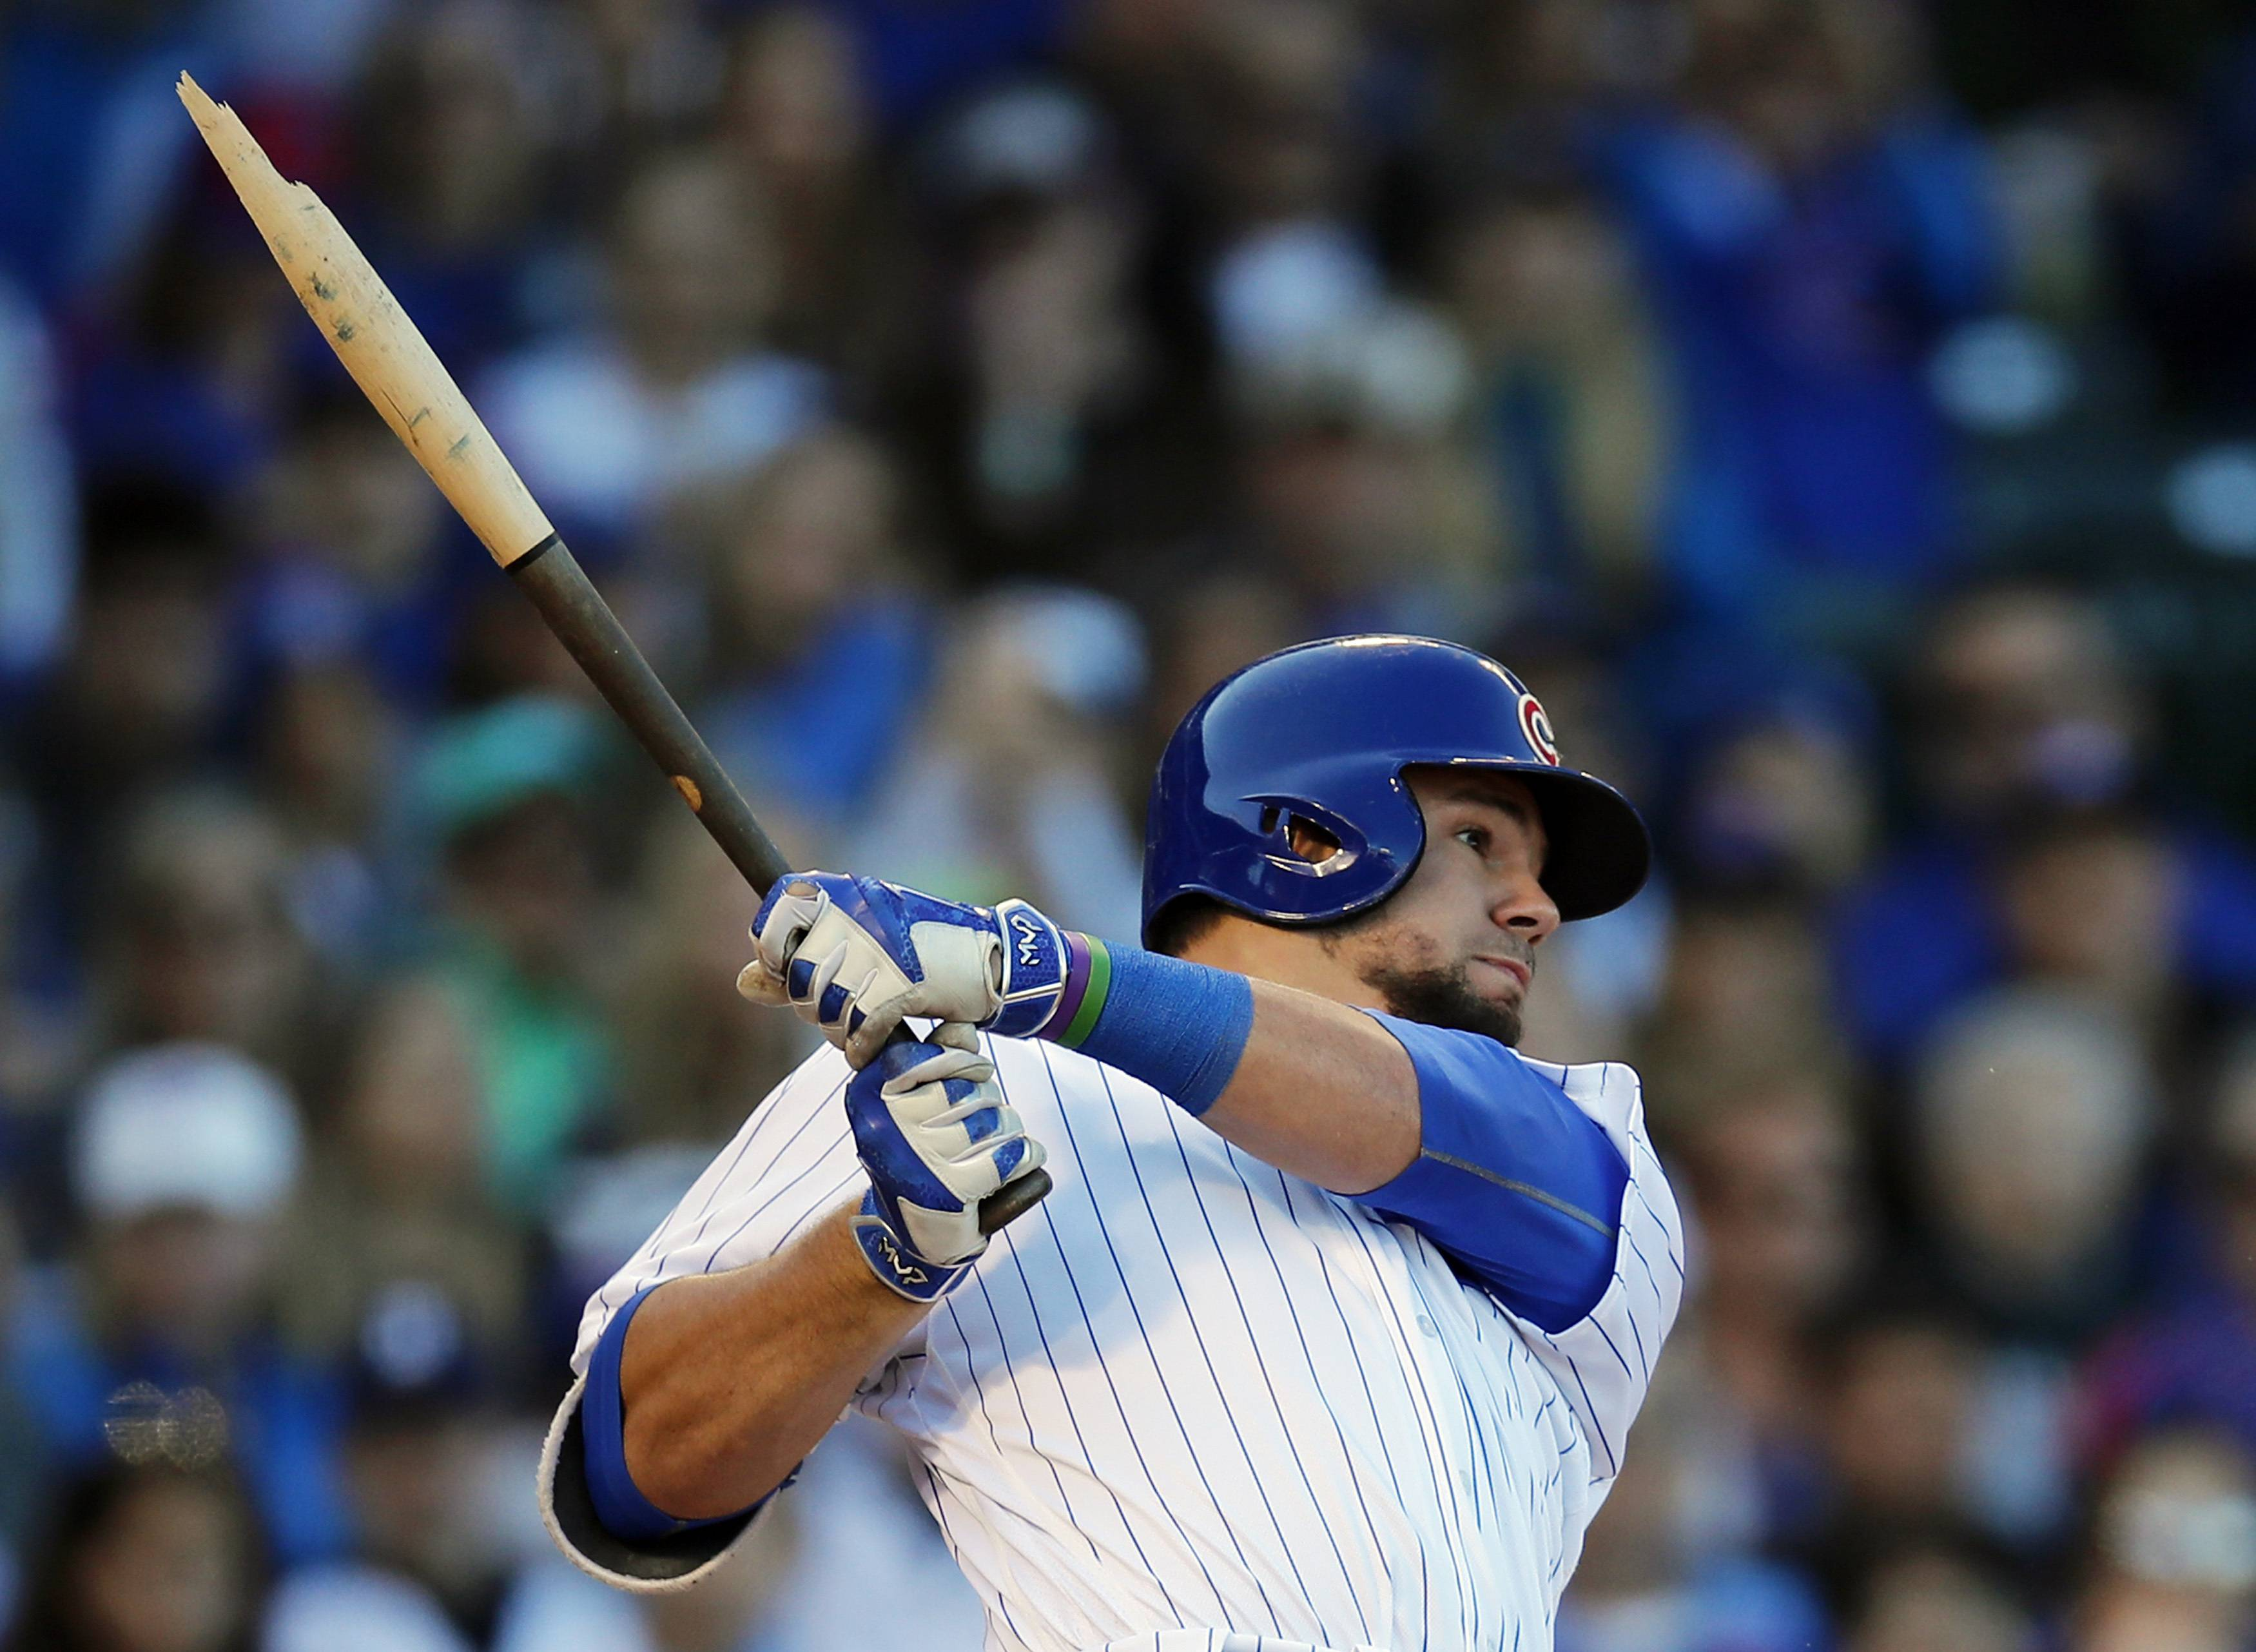 Chicago Cubs' Kyle Schwarber breaks his bat on a two-run single against the Cincinnati Reds during the third inning of a baseball game Saturday, Sept. 30, 2017, in Chicago.